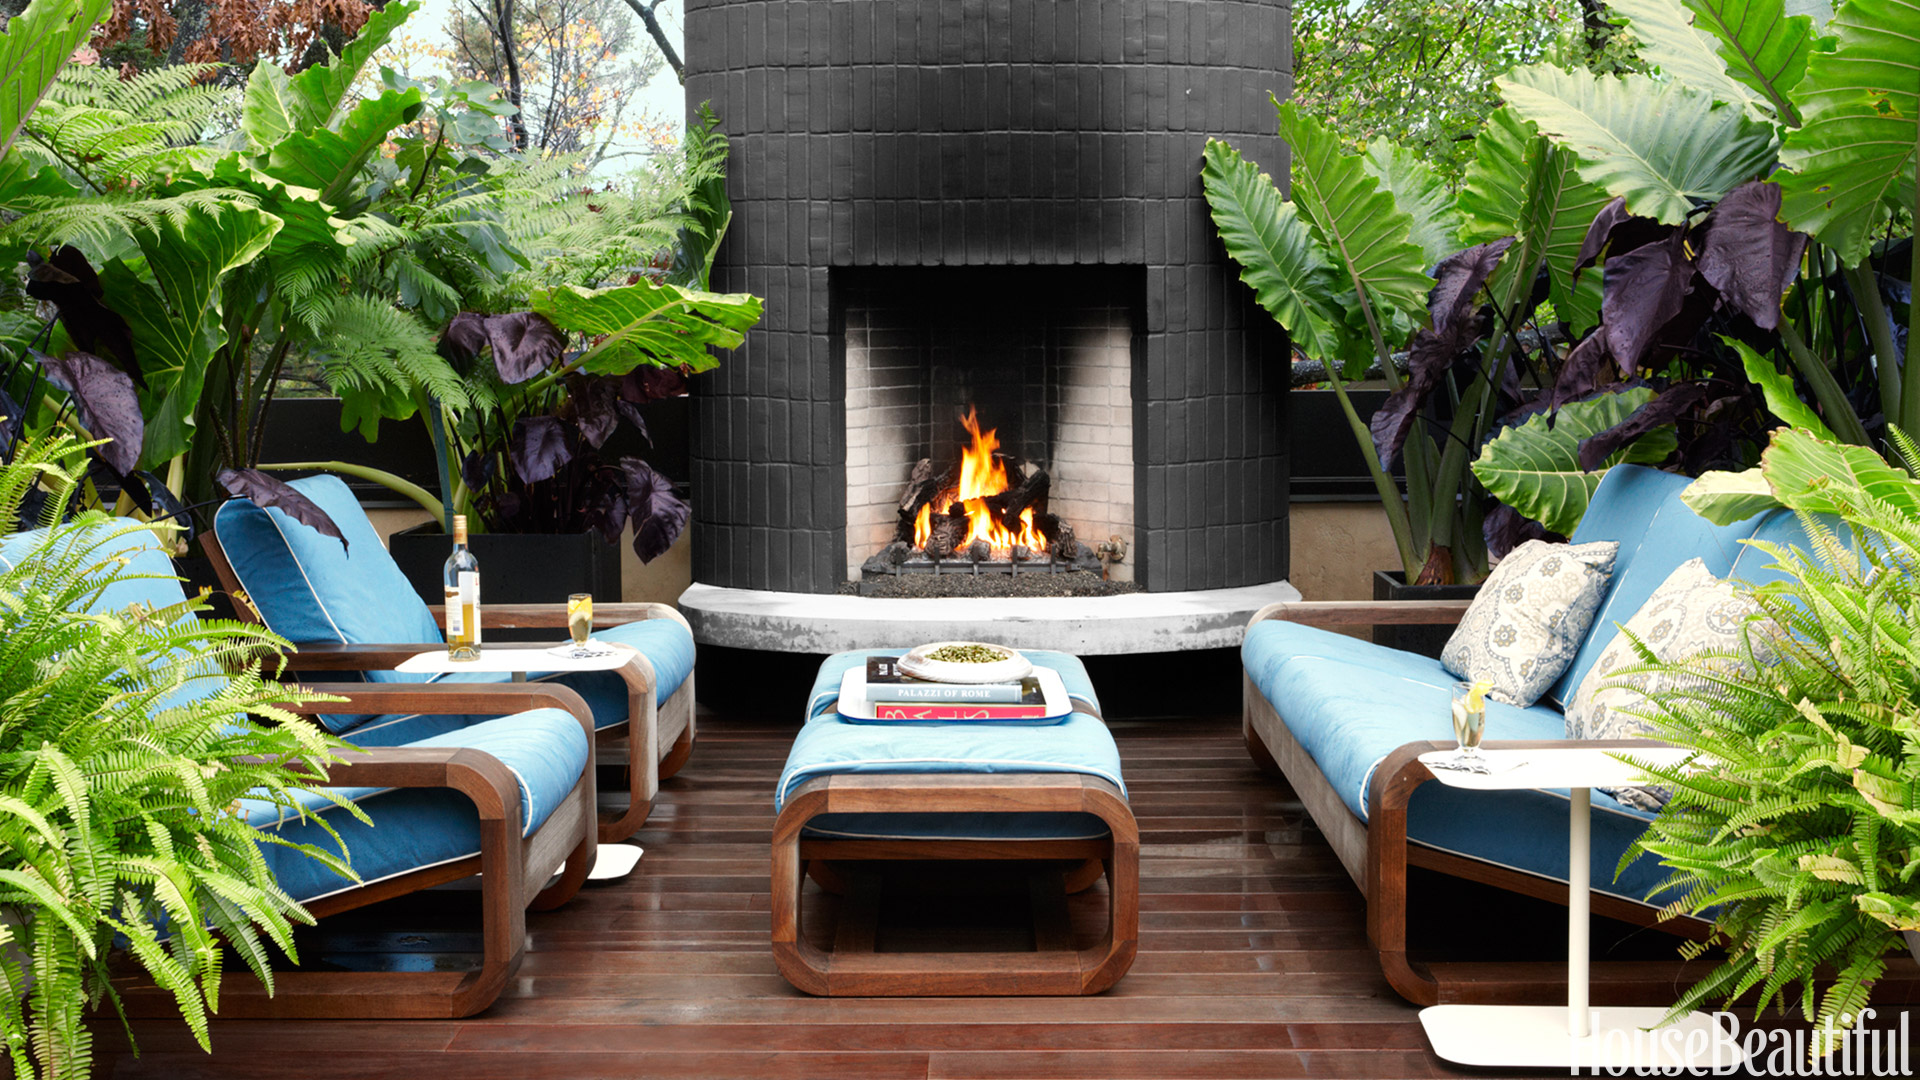 20 Outdoor Fireplaces That Will Keep You Warm All Night ... on Small Outdoor Fireplace Ideas id=22595